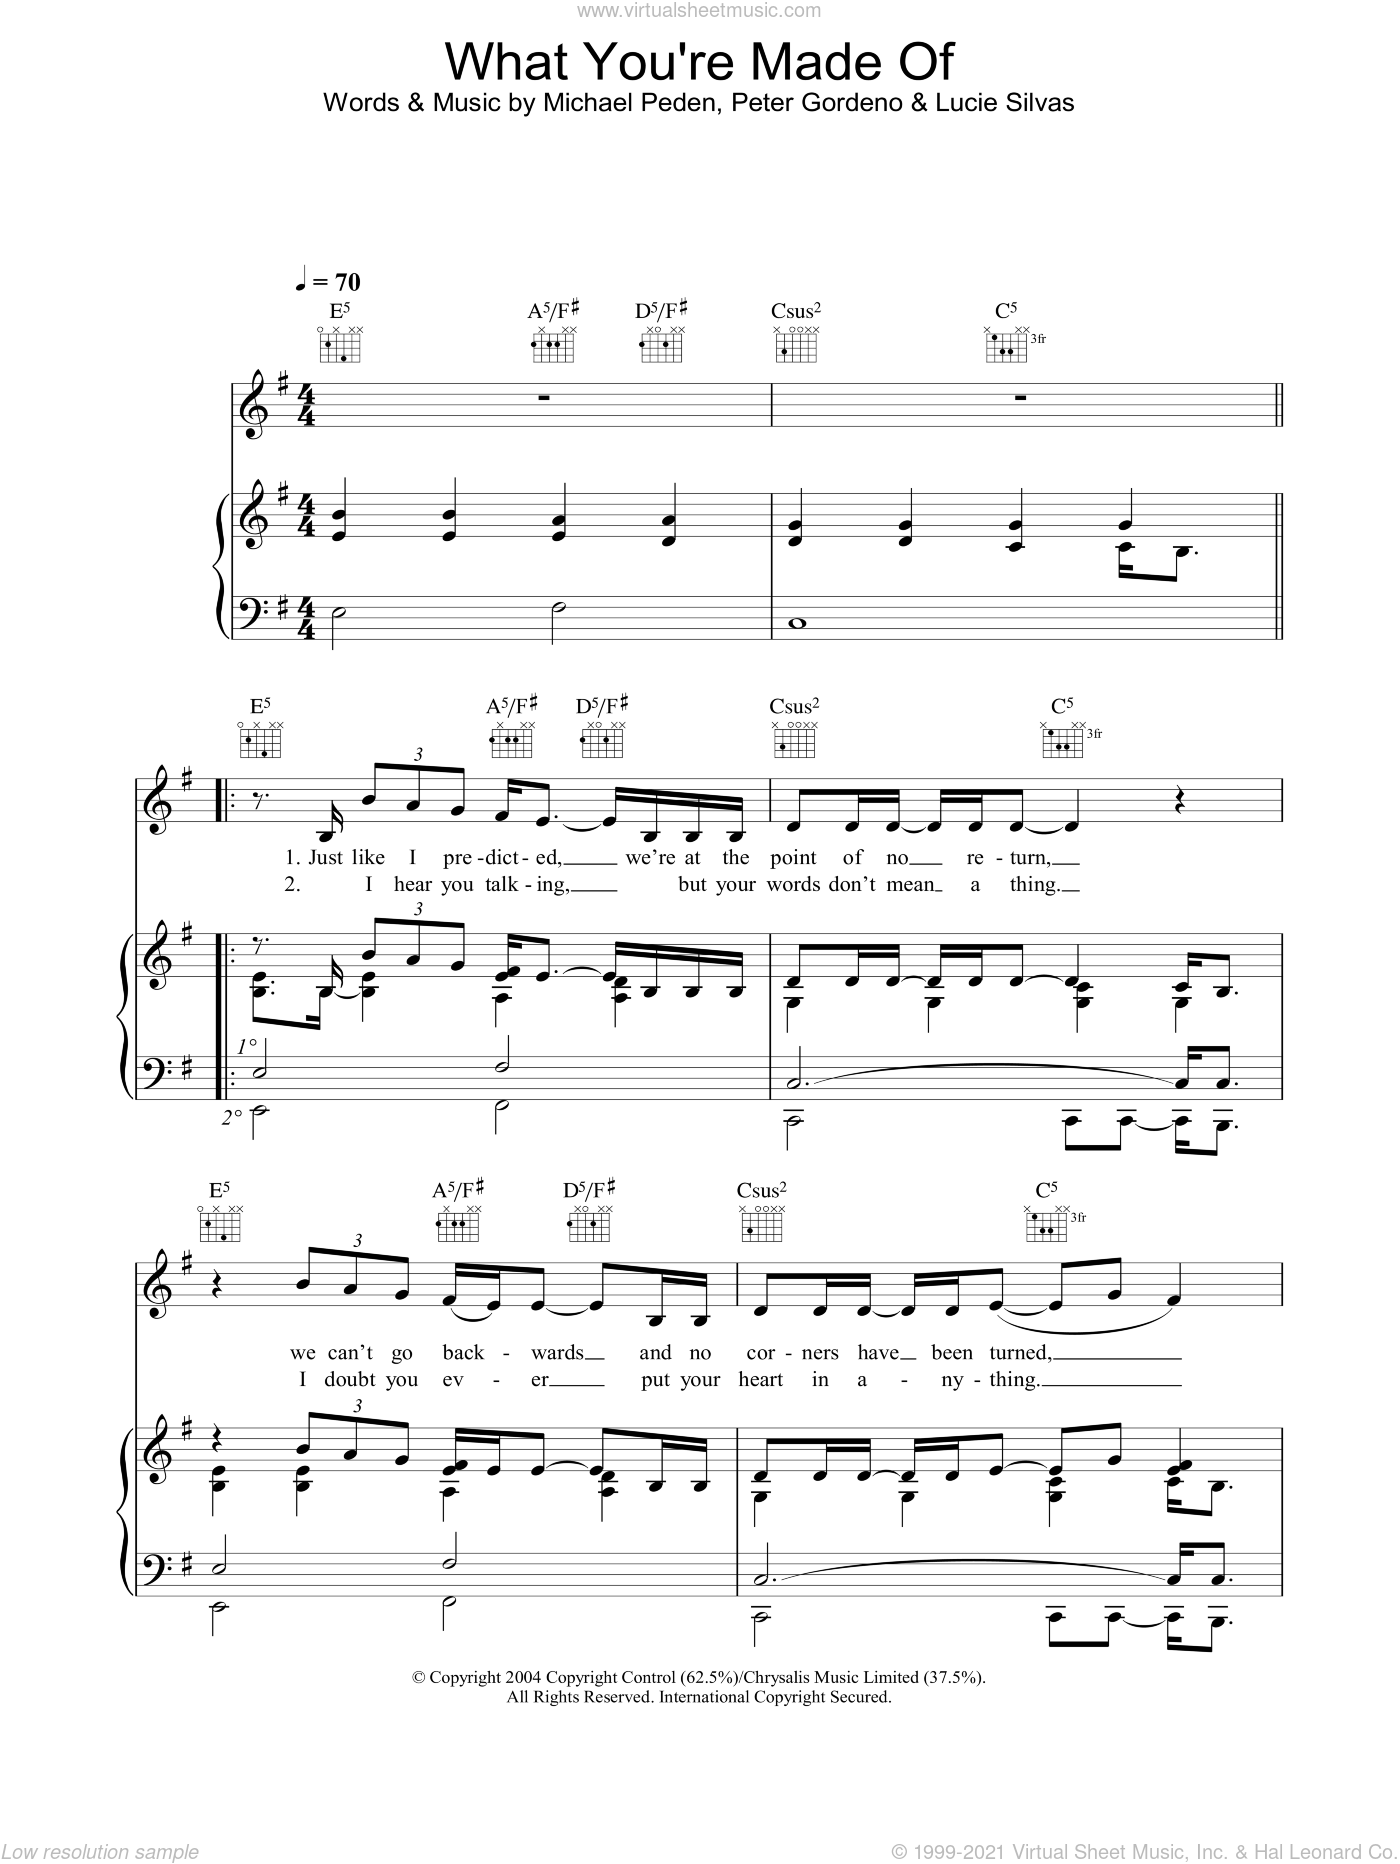 What You're Made Of sheet music for voice, piano or guitar by Lucie Silvas, Michael Peden and Peter Gordeno, intermediate skill level